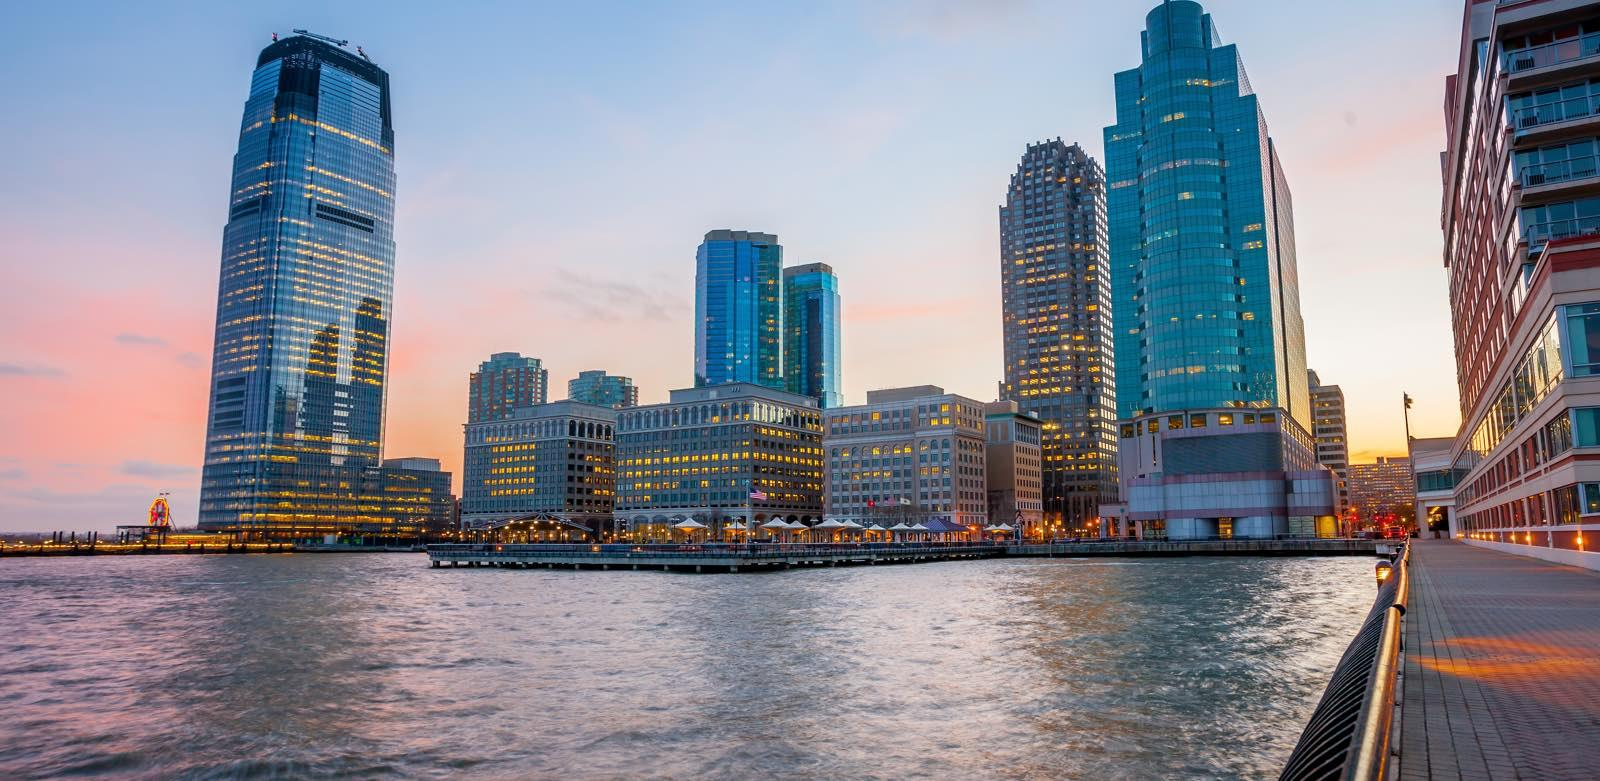 Jersey City Condos For Sale   Find Condos & Lofts in Jersey City ...